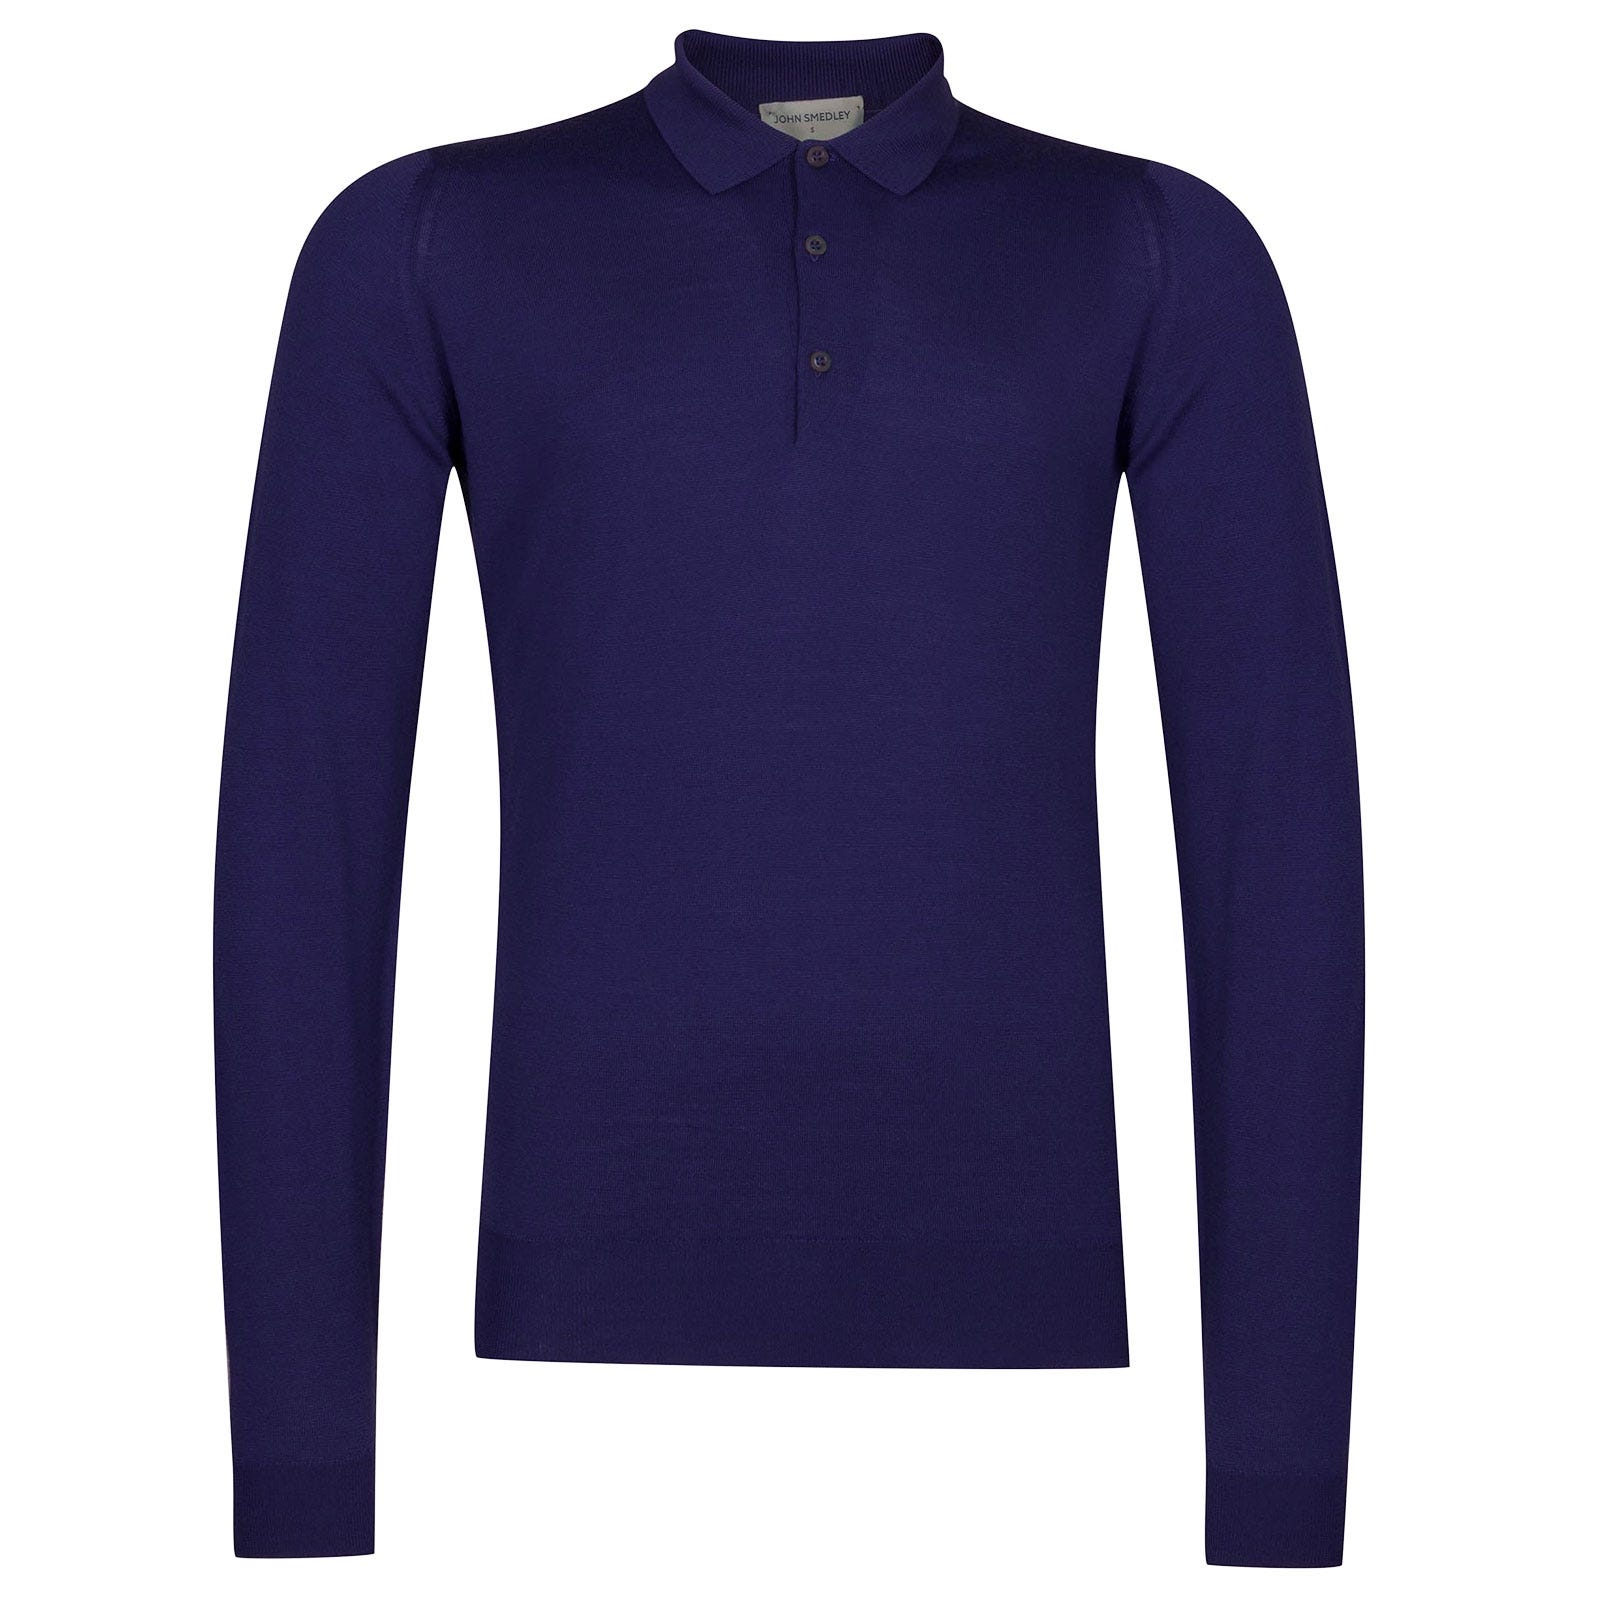 John Smedley Belper Merino Wool Shirt in Serge Blue-XXL